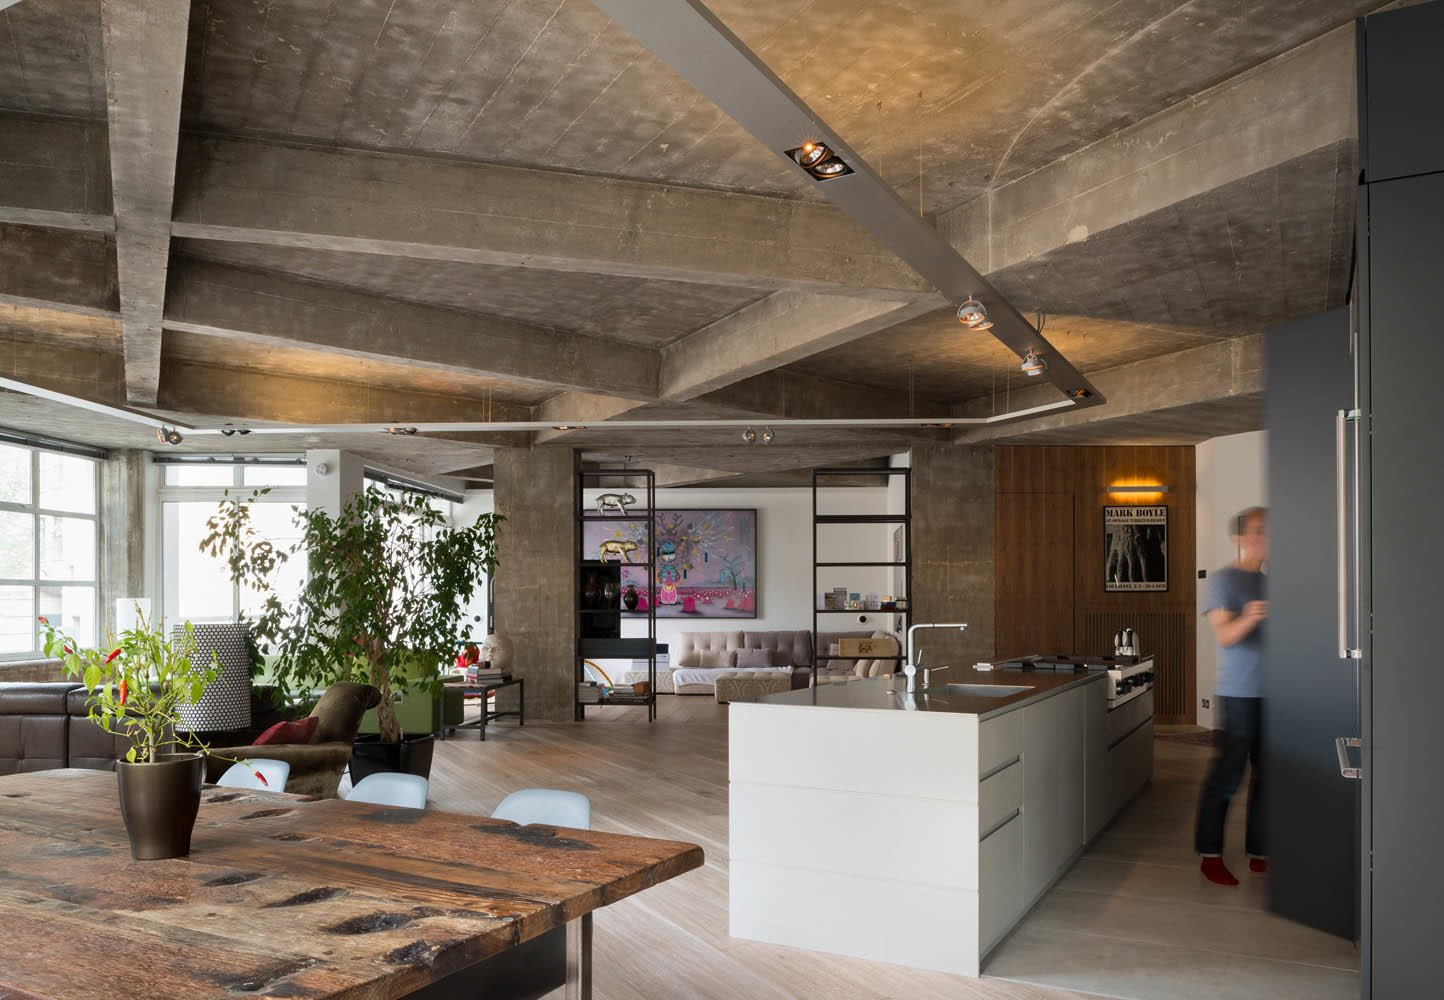 Kitchen, White Cabinet, Undermount Sink, Range, Light Hardwood Floor, and Track Lighting Inside Out Architecture renovated an apartment in the Clerkenwell section of central London, removing interior walls to create an open, loft-like living space. Photo by Jim Stephenson.  Photo 7 of 25 in 25 Modern Homes That Kill it With Concrete from Renovation Opens Up a London Apartment